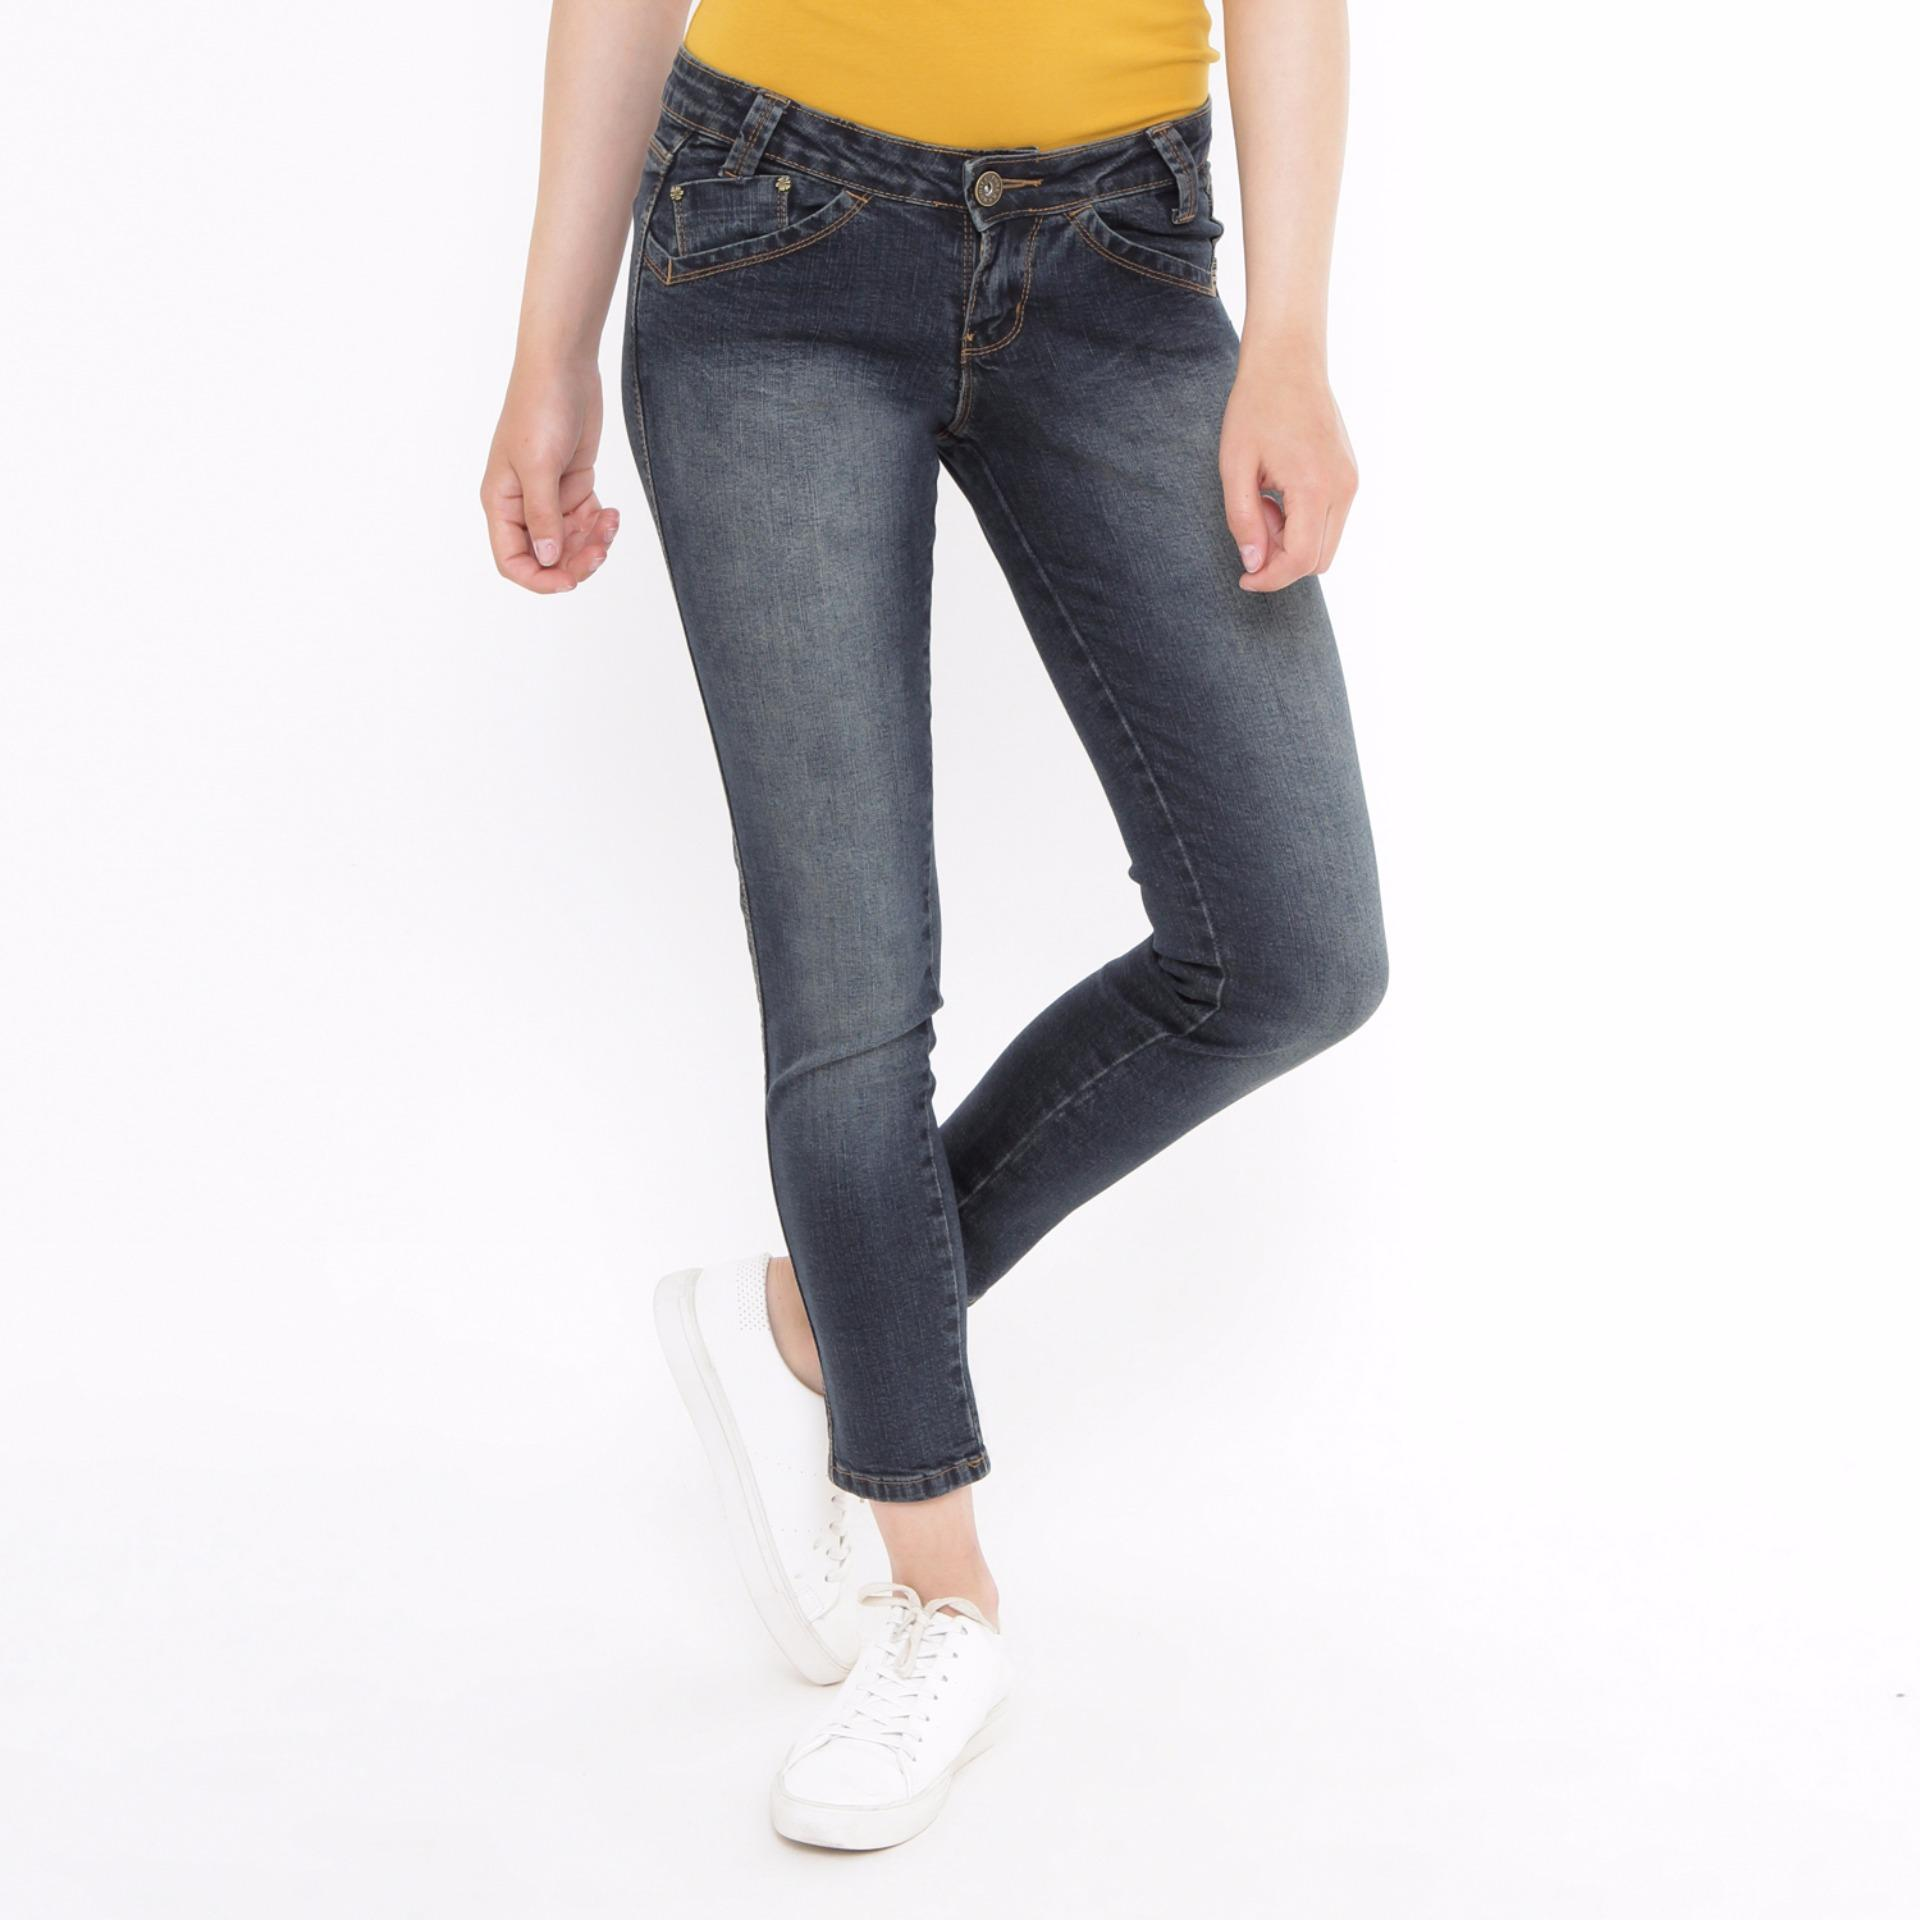 Jual Angel Cut Long Pants Jeans Denim Mobile Power Ladies J2678S Di Bawah Harga